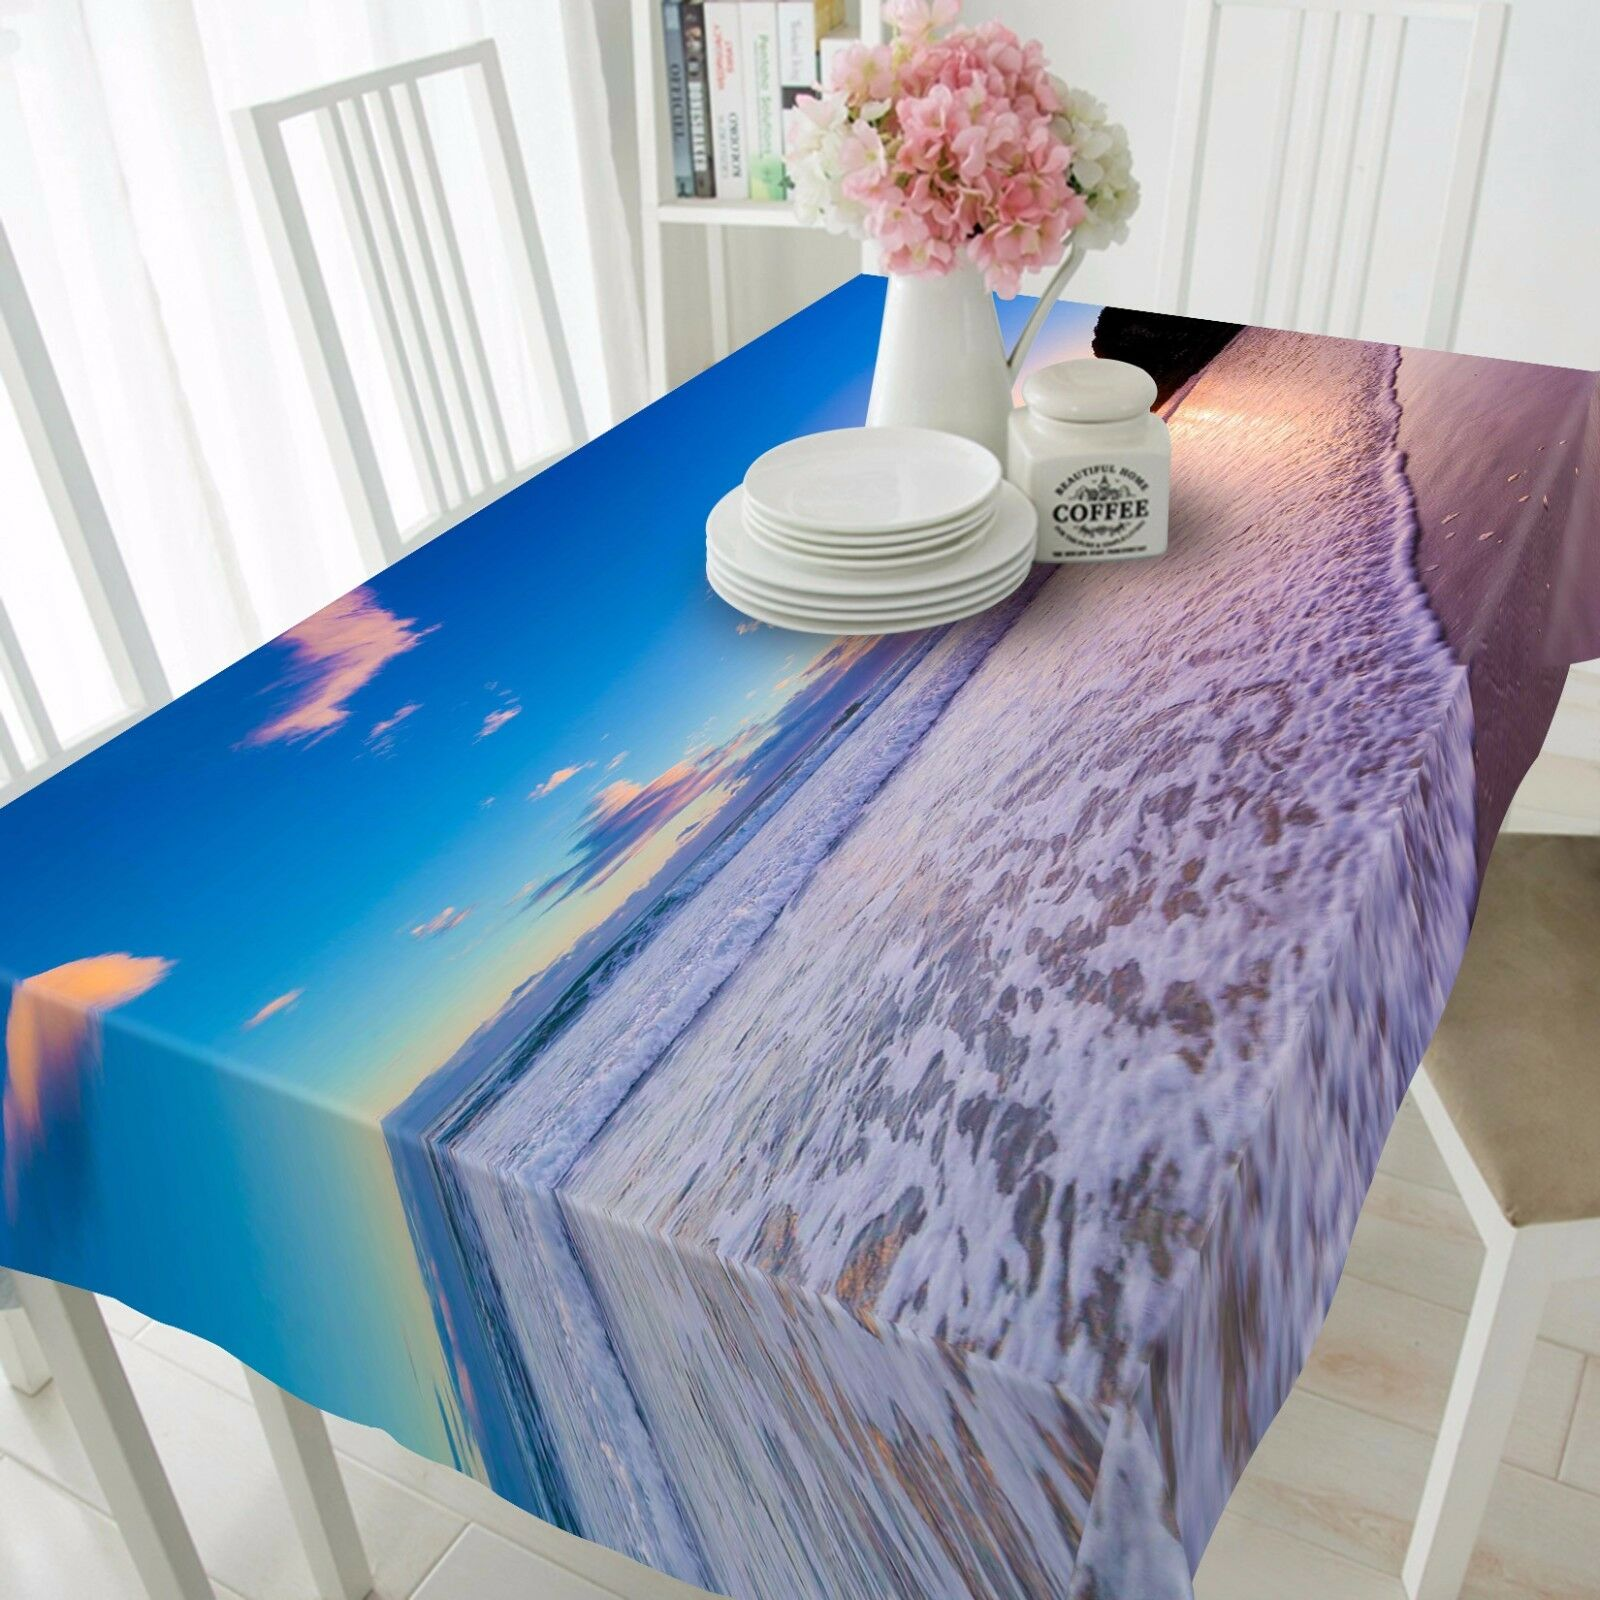 3D Wave Beach Tablecloth Table Cover Cloth Birthday Party AJ WALLPAPER UK Lemon